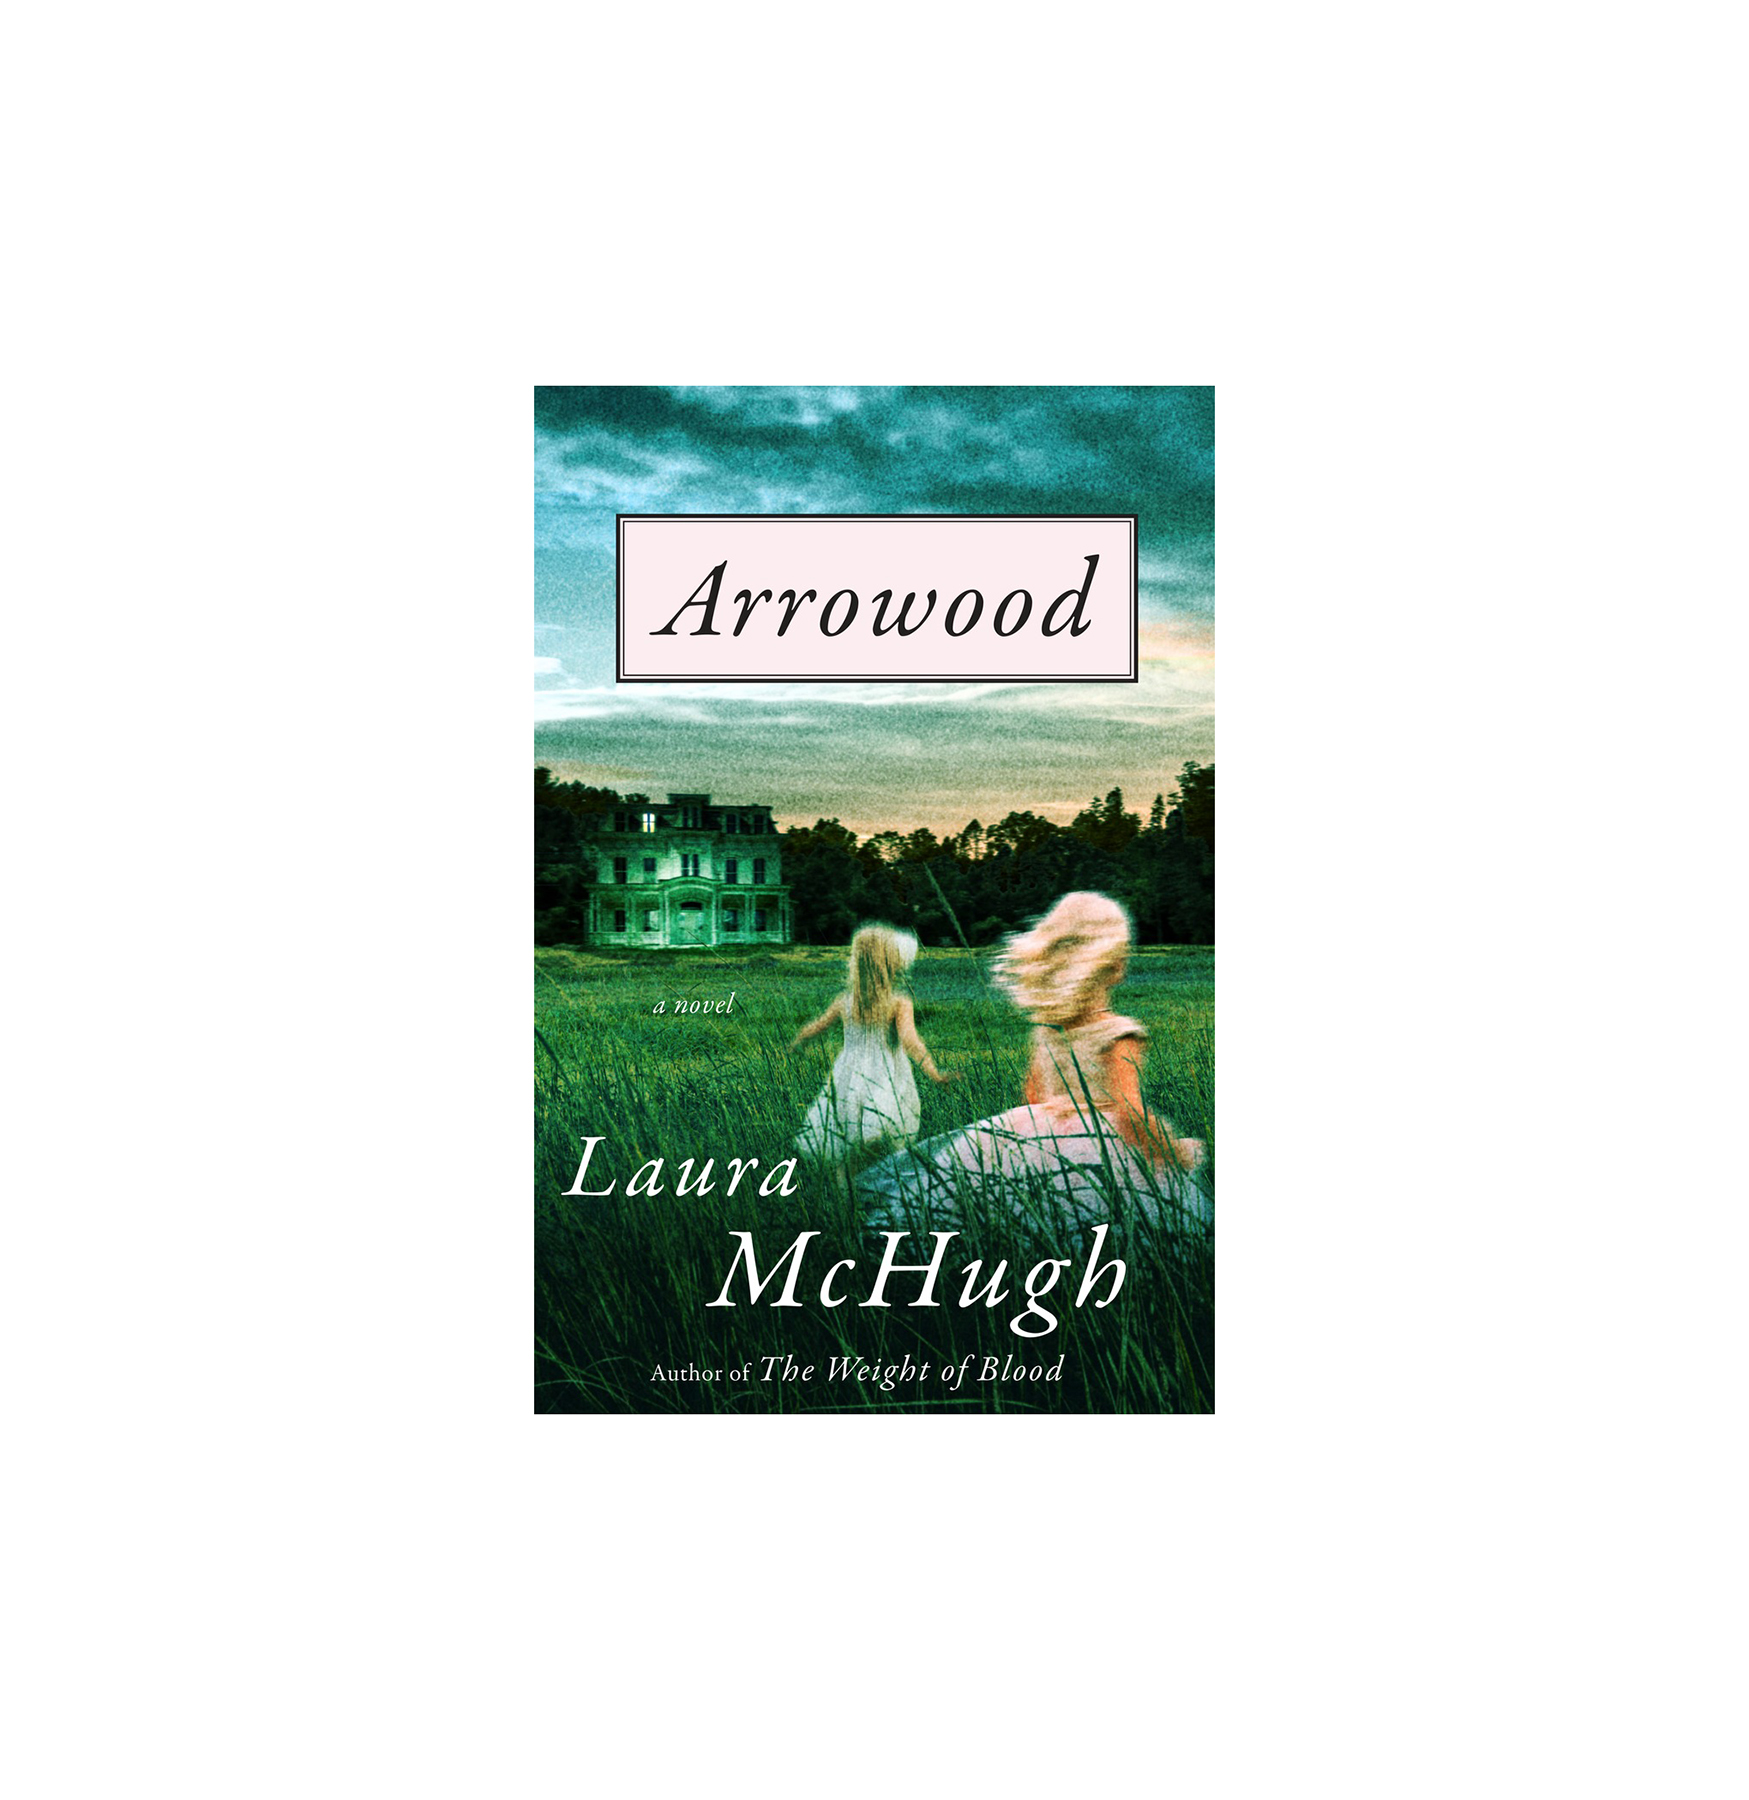 Arrowood, by Laura McHugh